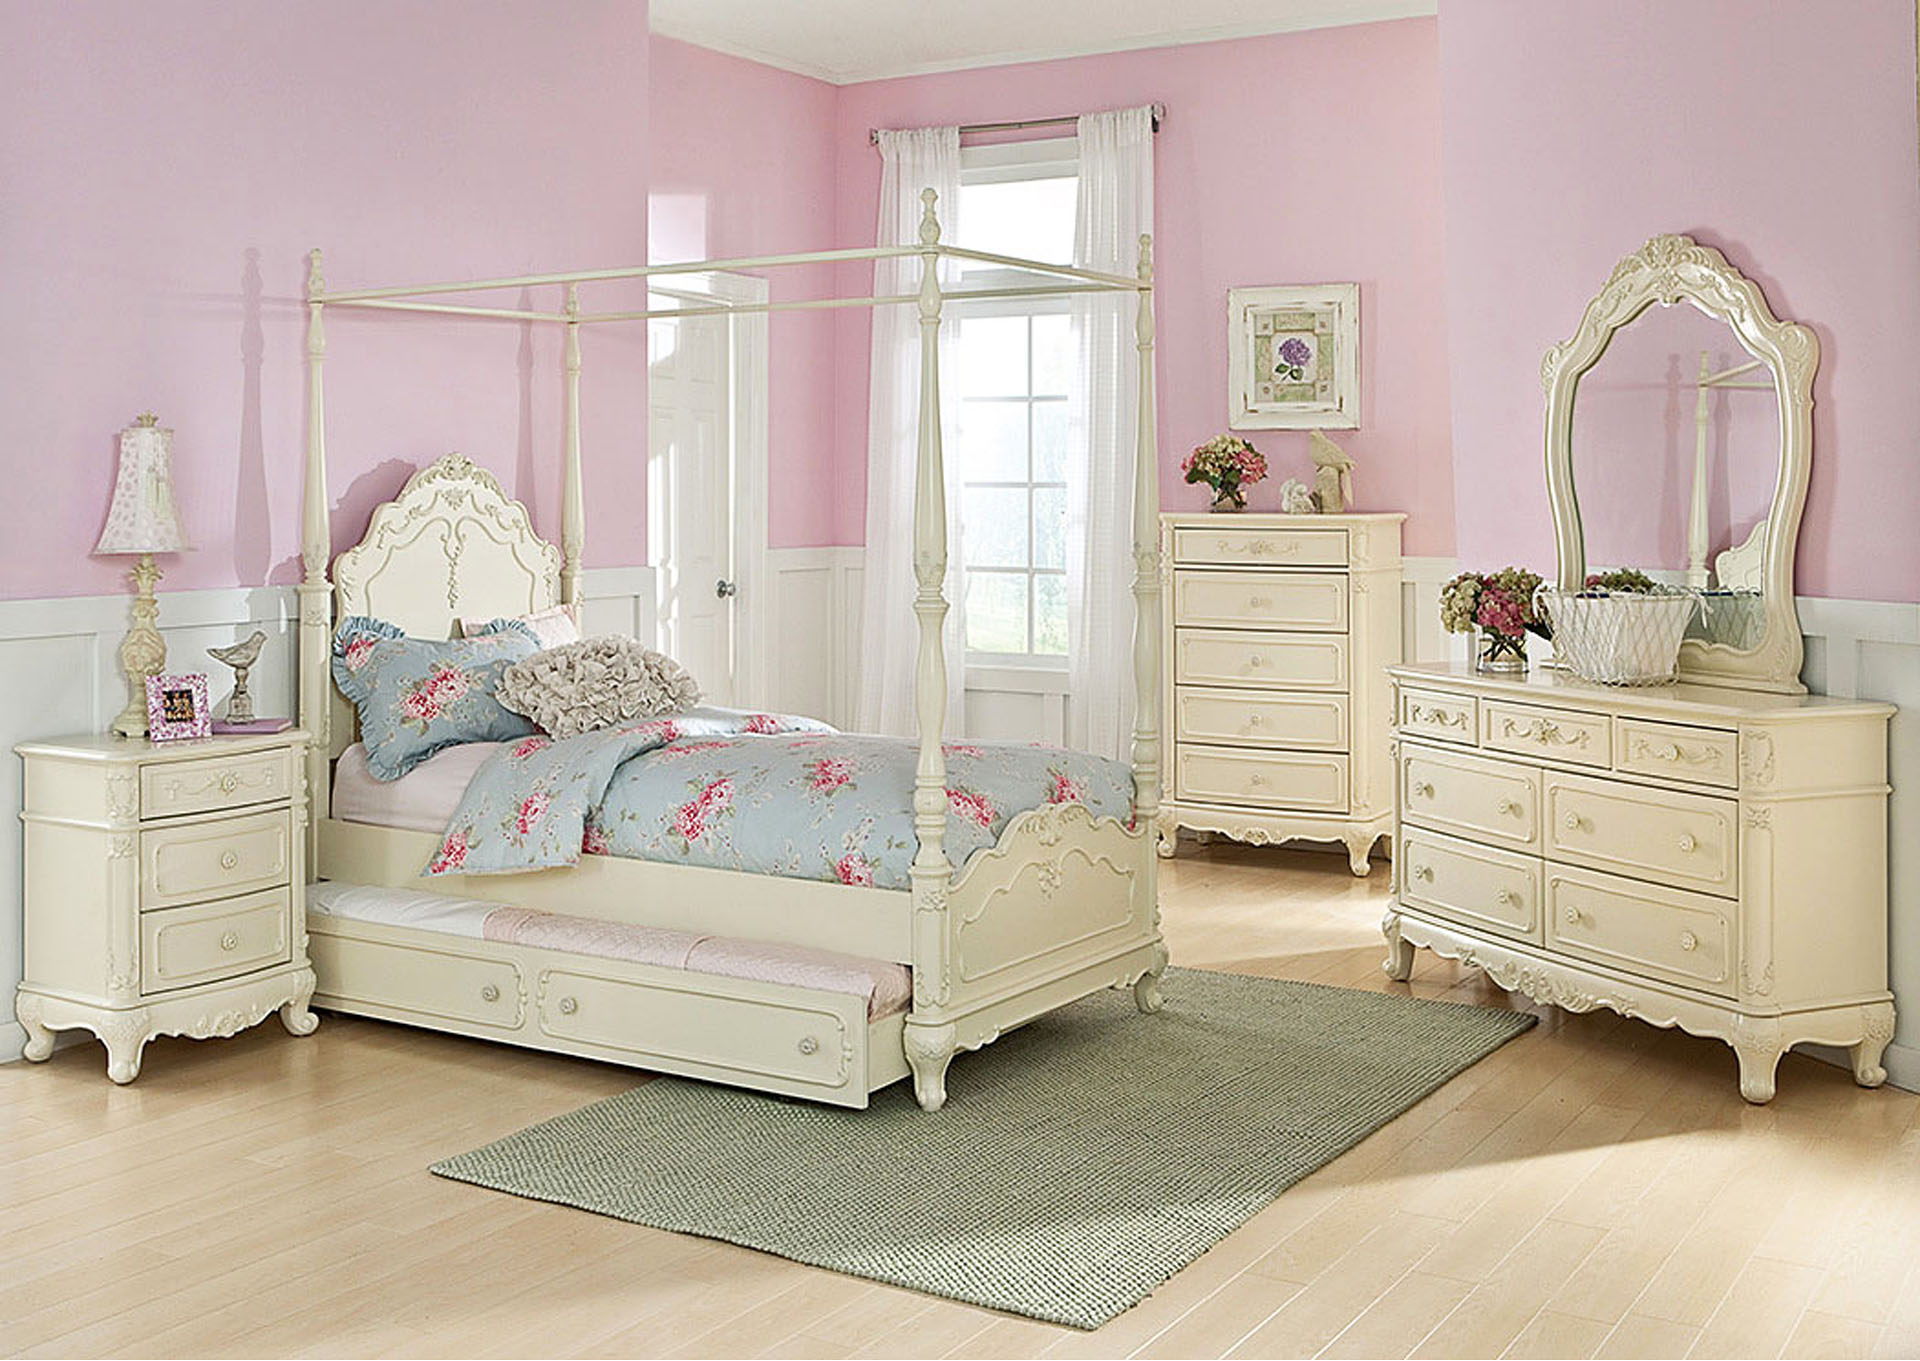 Cinderella White Twin Canopy Poster Bed w/ Dresser, Mirror and Nightstand,Homelegance